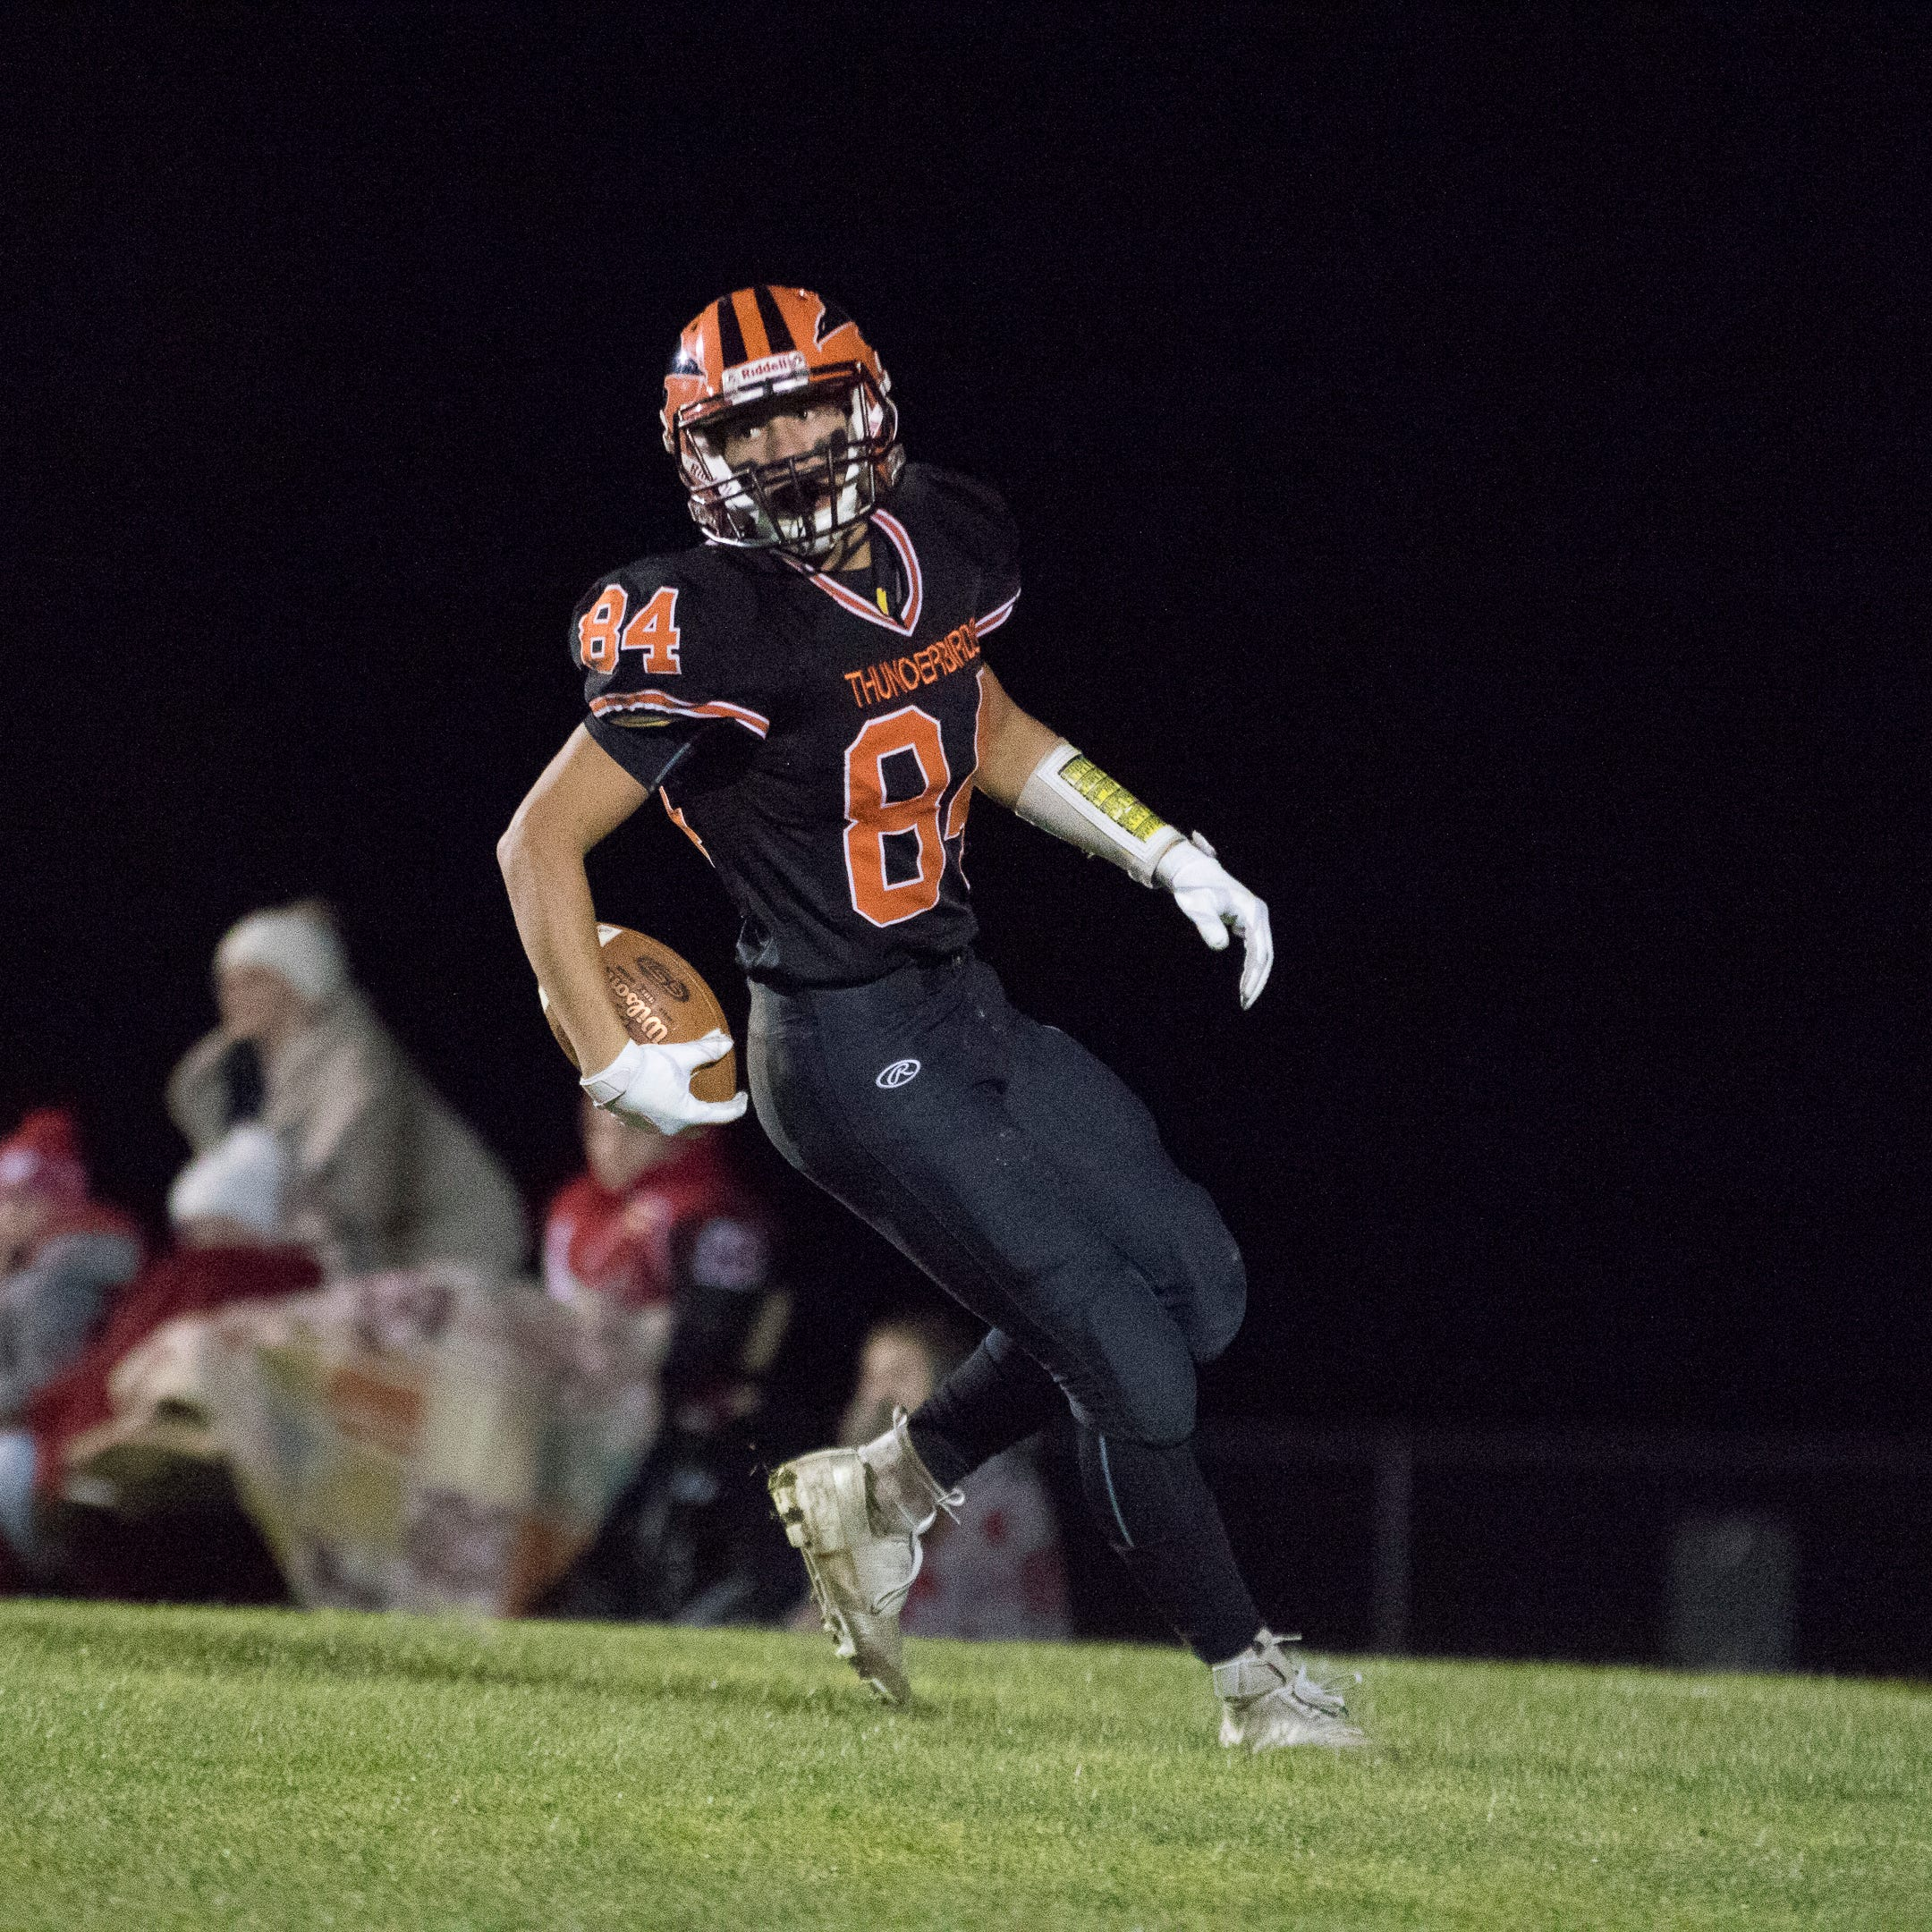 WIAA football: Iola-Scandinavia one win from return trip to Madison